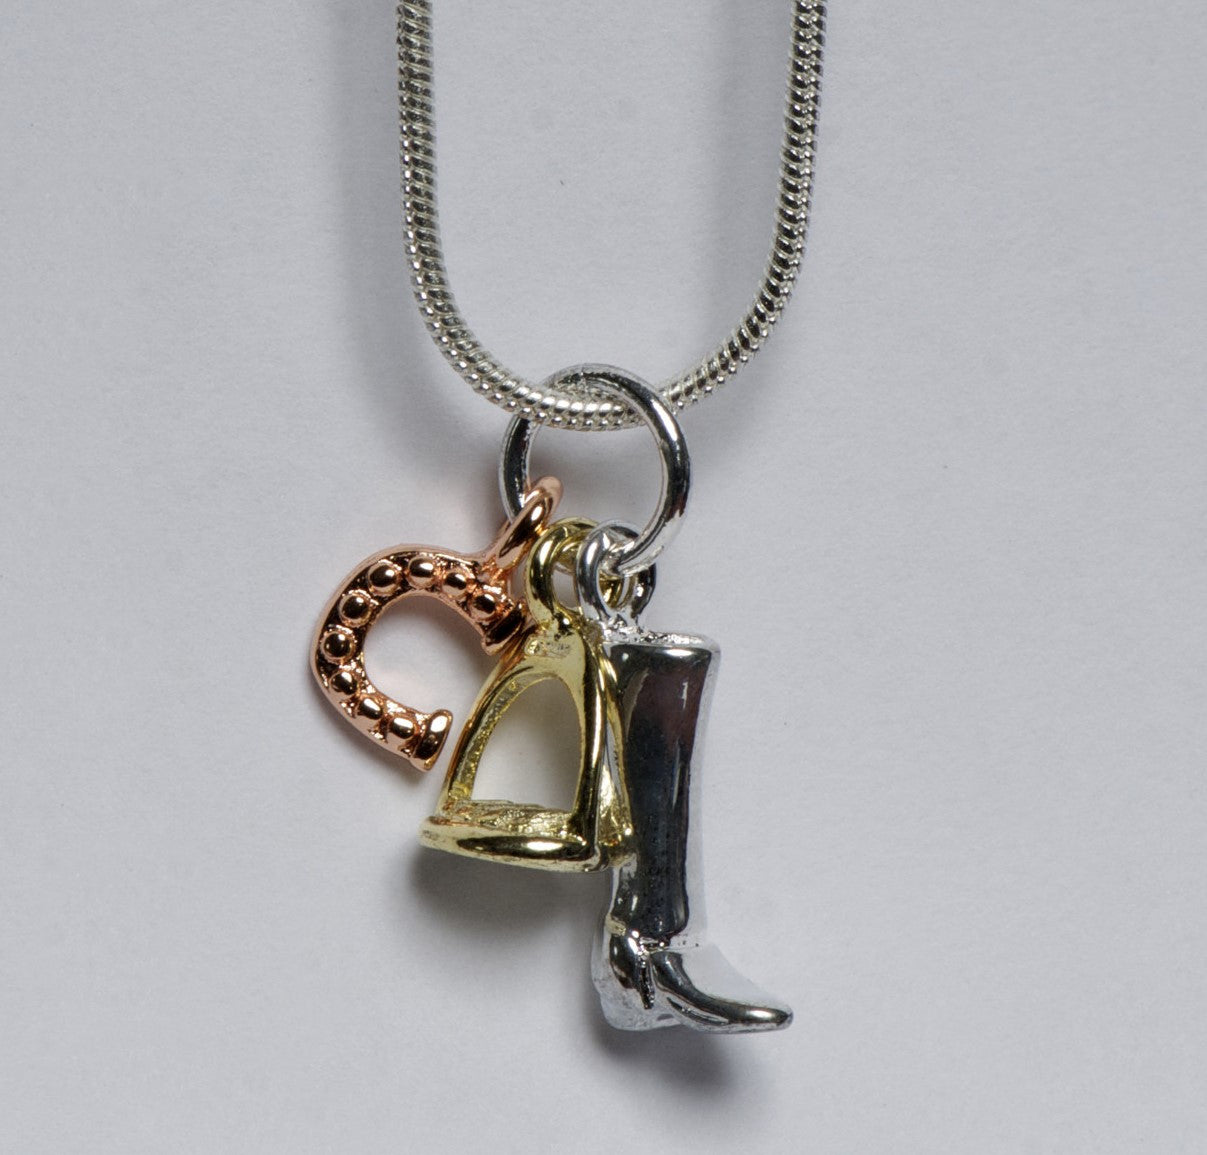 Three Wishes Necklace - Pony Express Girls